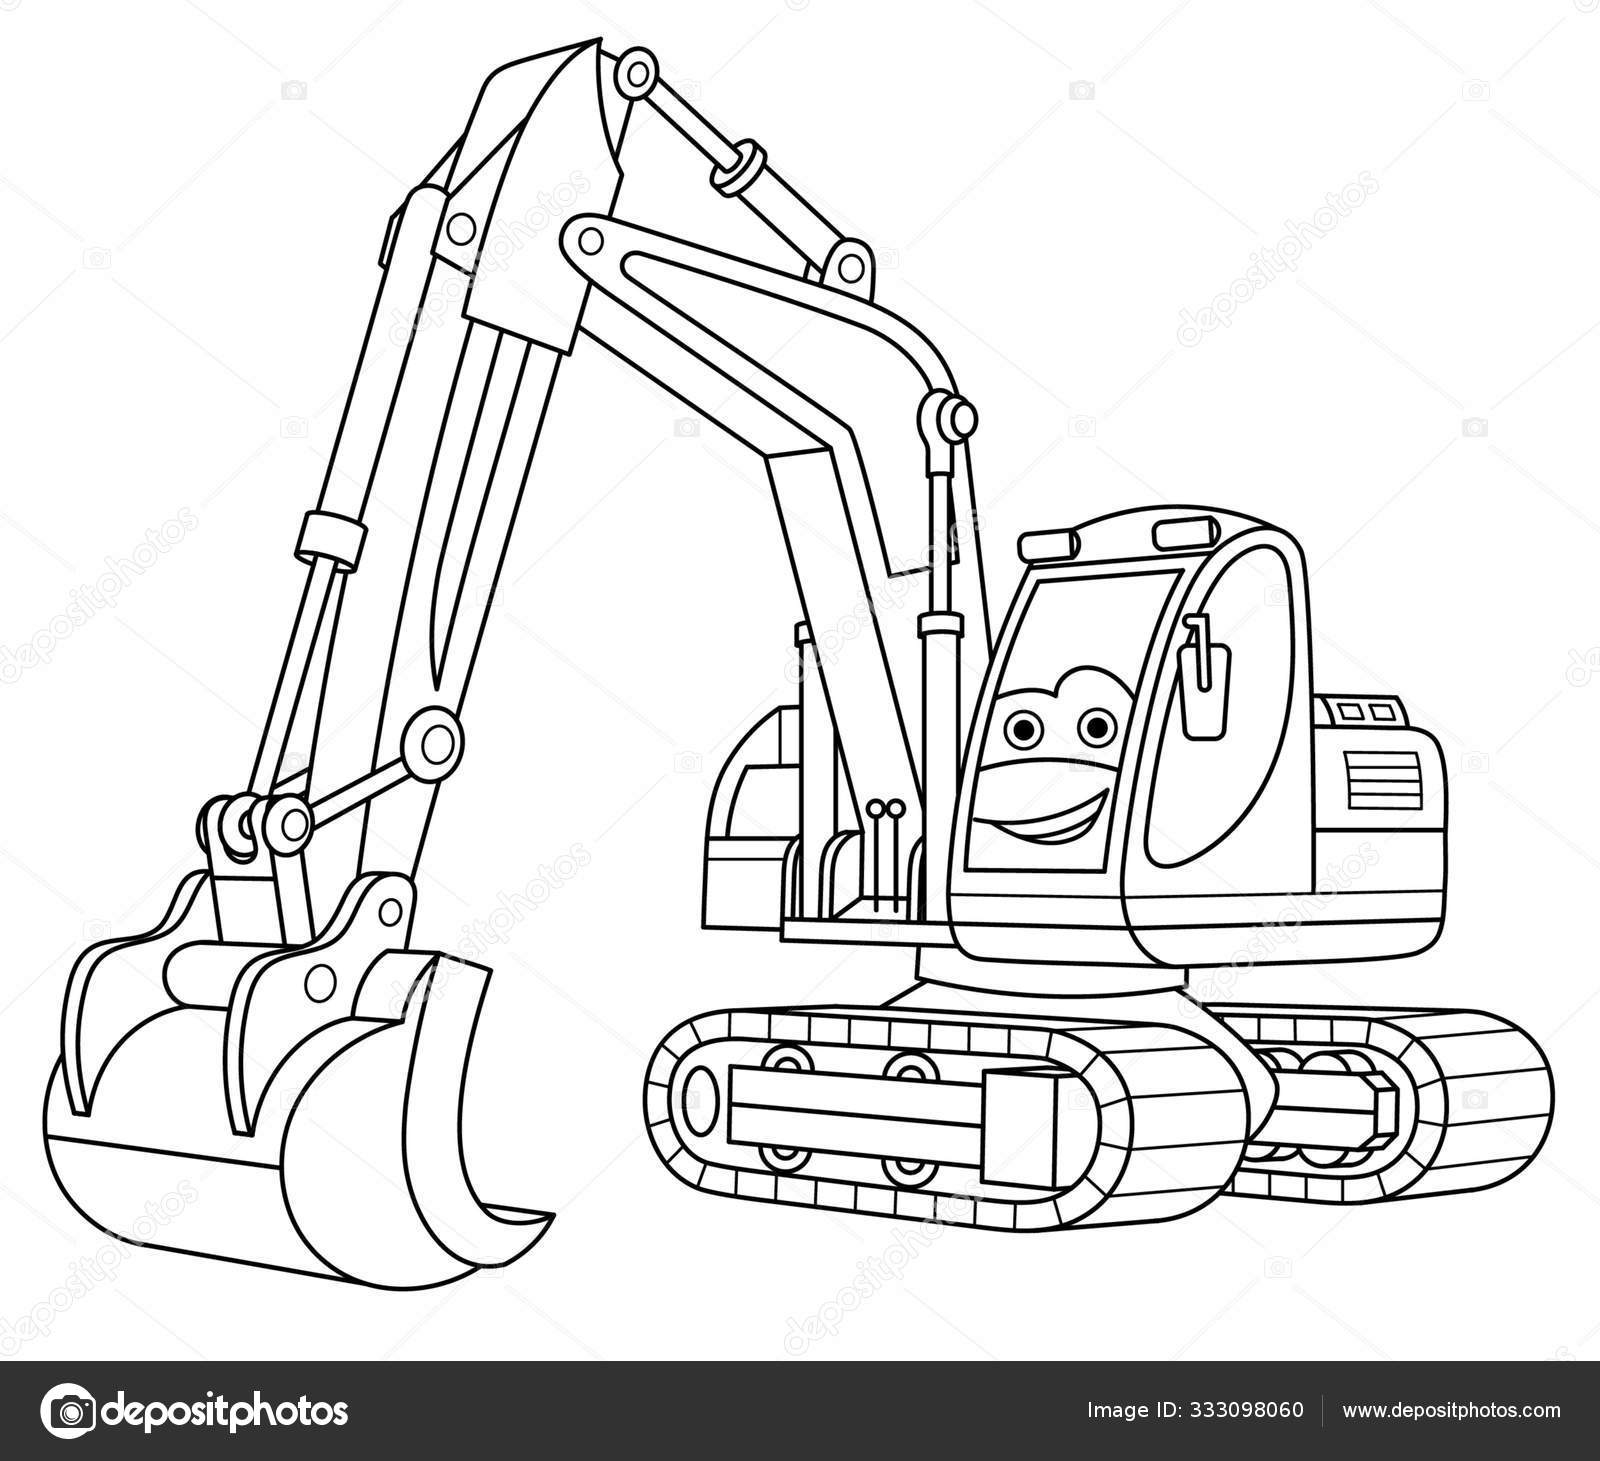 Coloring Page With Excavator Vector Image By C Sybirko Vector Stock 333098060